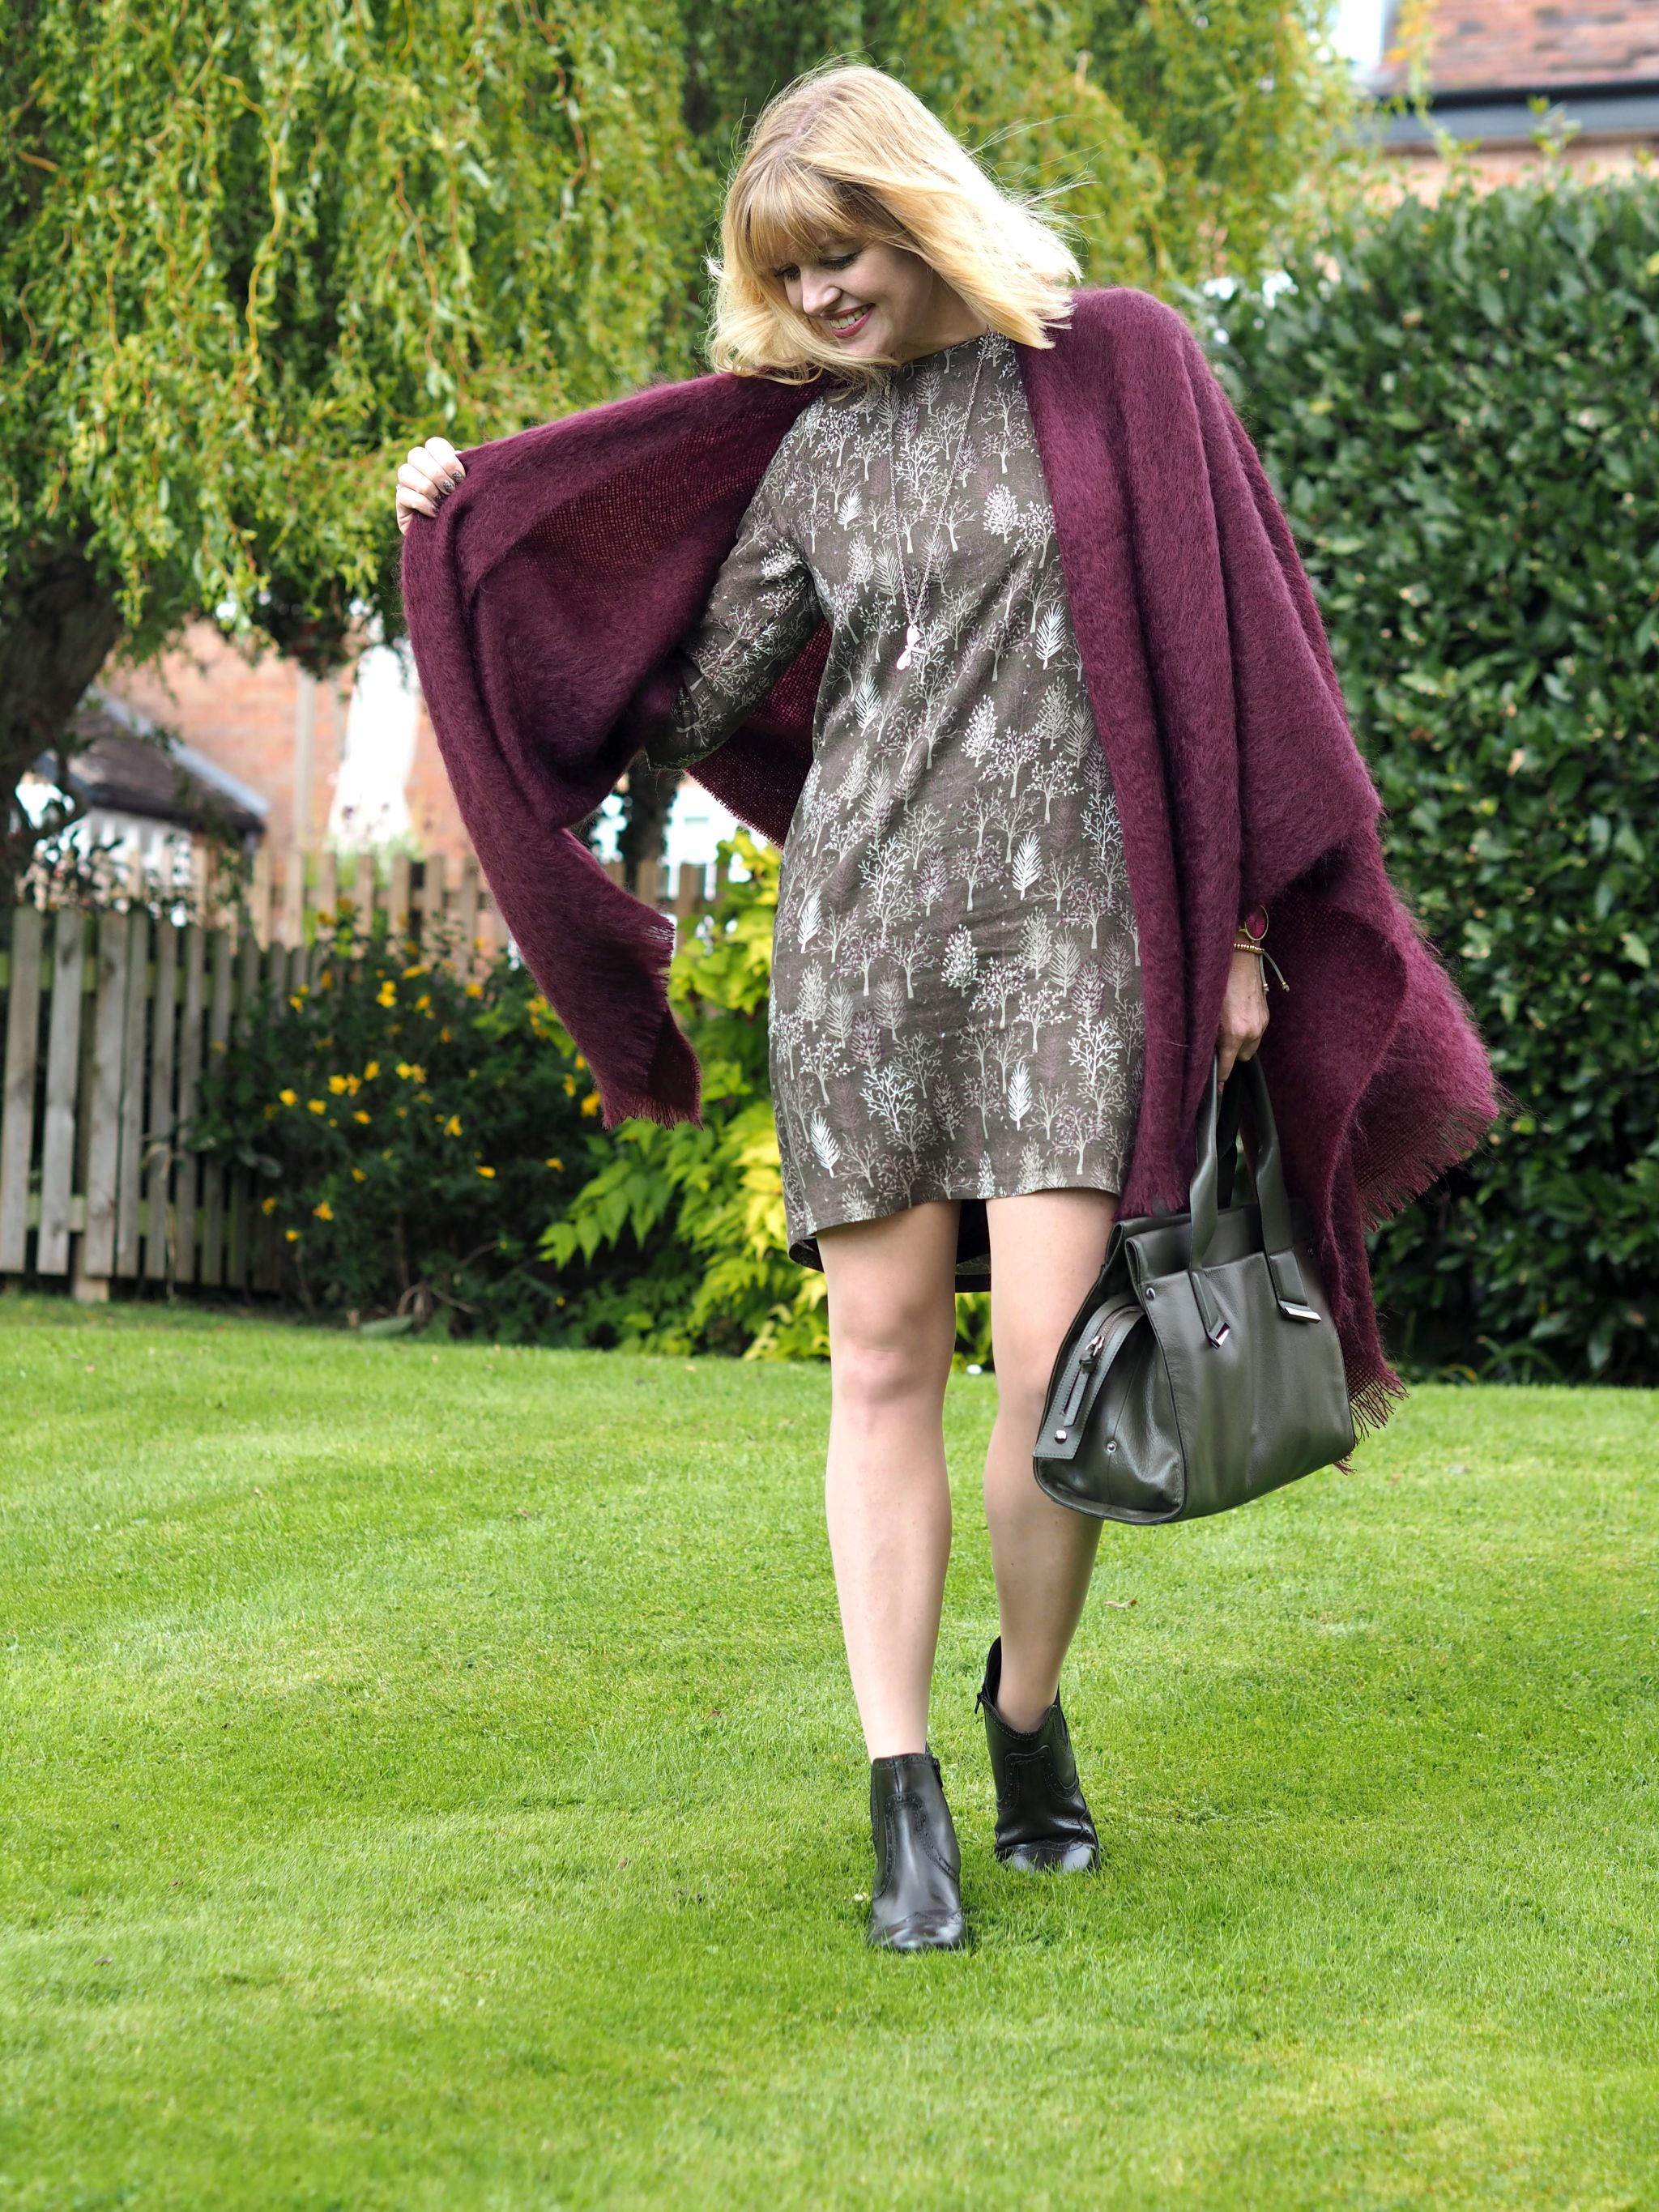 what-lizzy-loves-khaki-tunic-dress-autumn-style-leather-handbag-mohair-serape